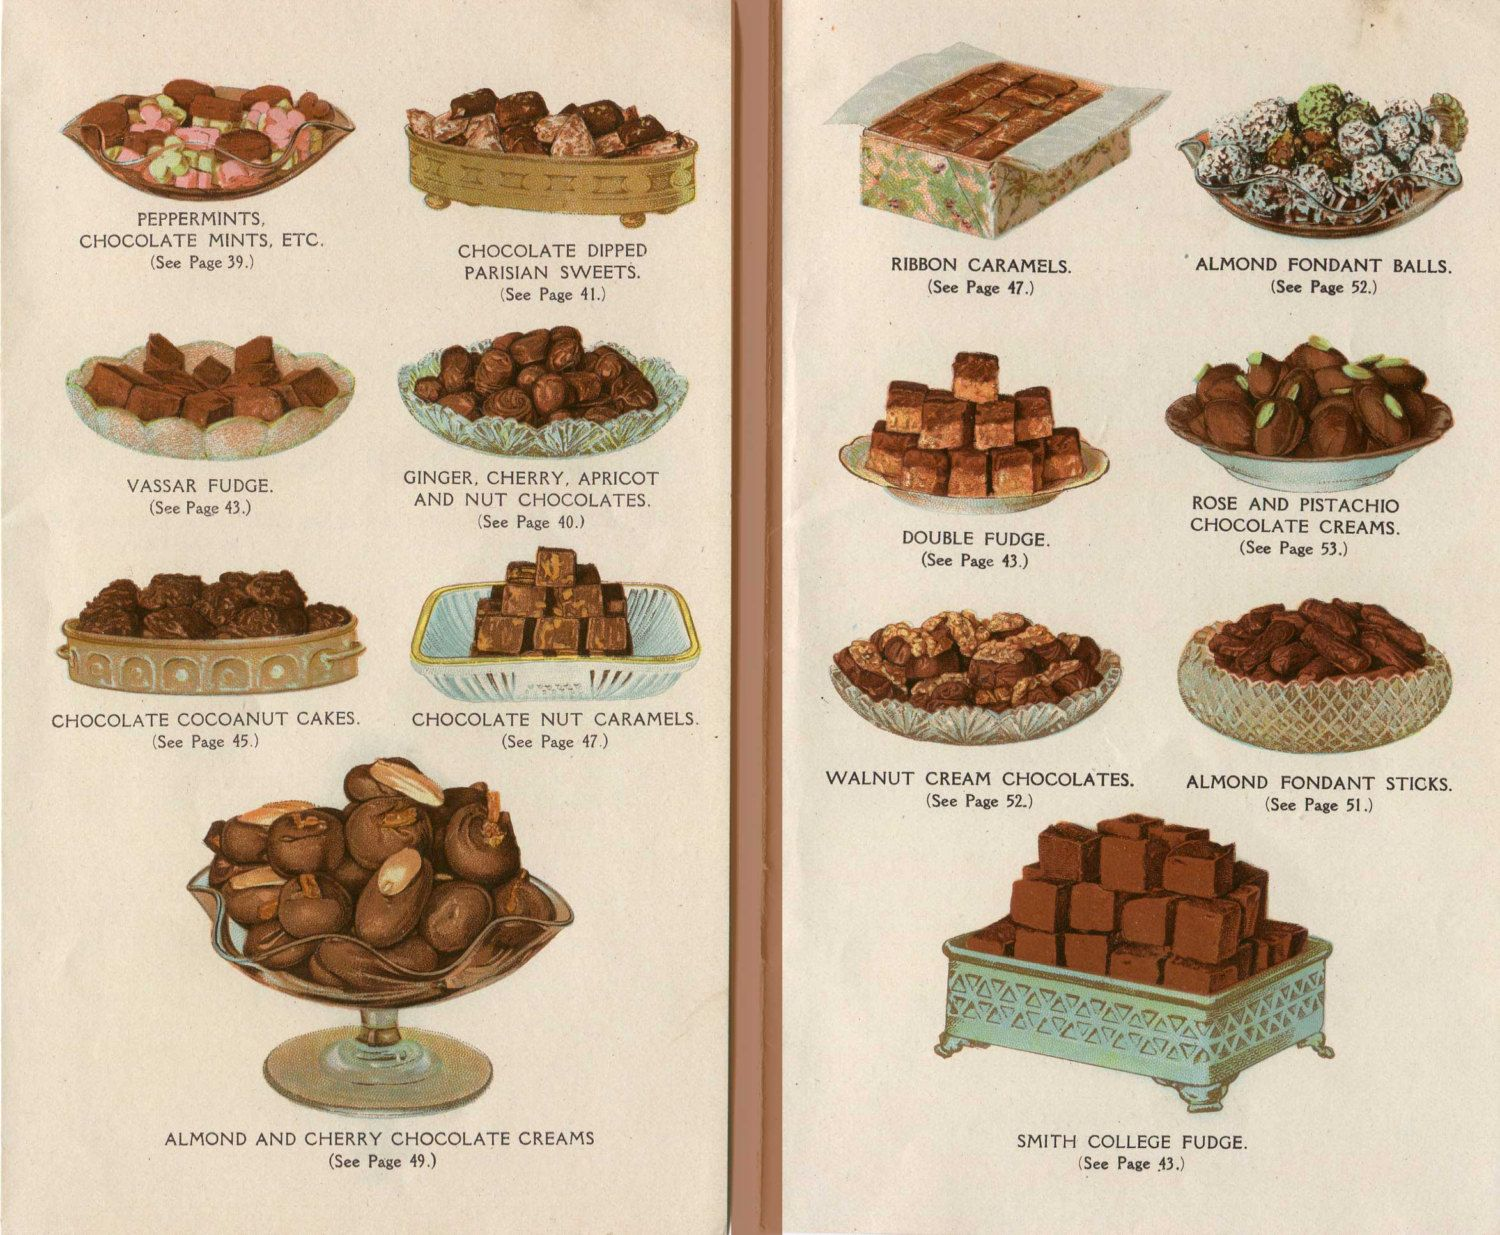 Pair of 1920's Vintage Chocolate Desserts Illustration Prints for